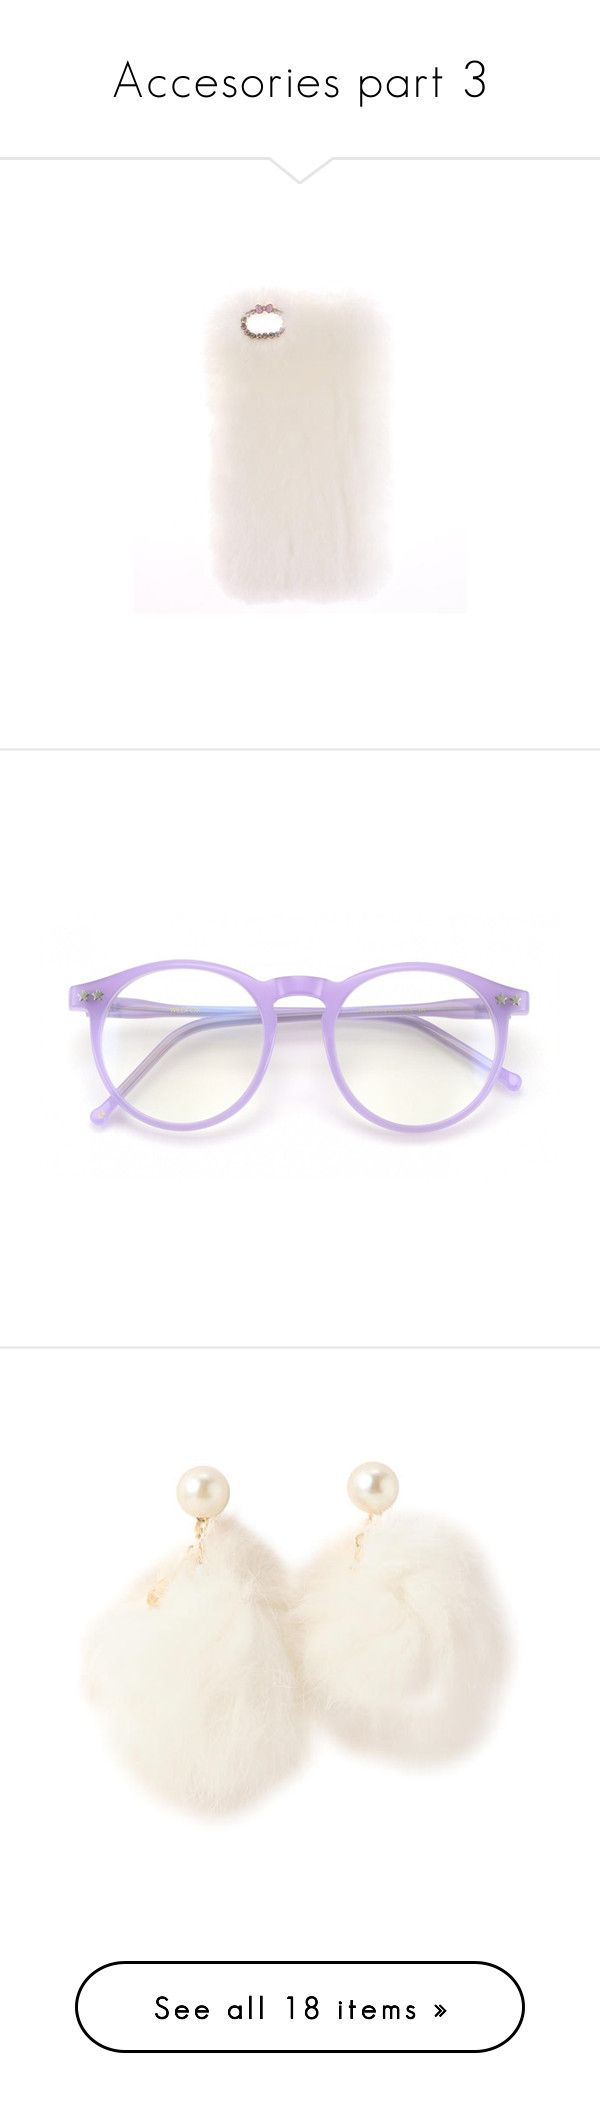 """""""Accesories part 3"""" by bubblegumbae ❤ liked on Polyvore featuring accessories, tech accessories, eyewear, eyeglasses, glasses, sunglasses, fillers, lavender, circle eyeglasses and circular glasses"""